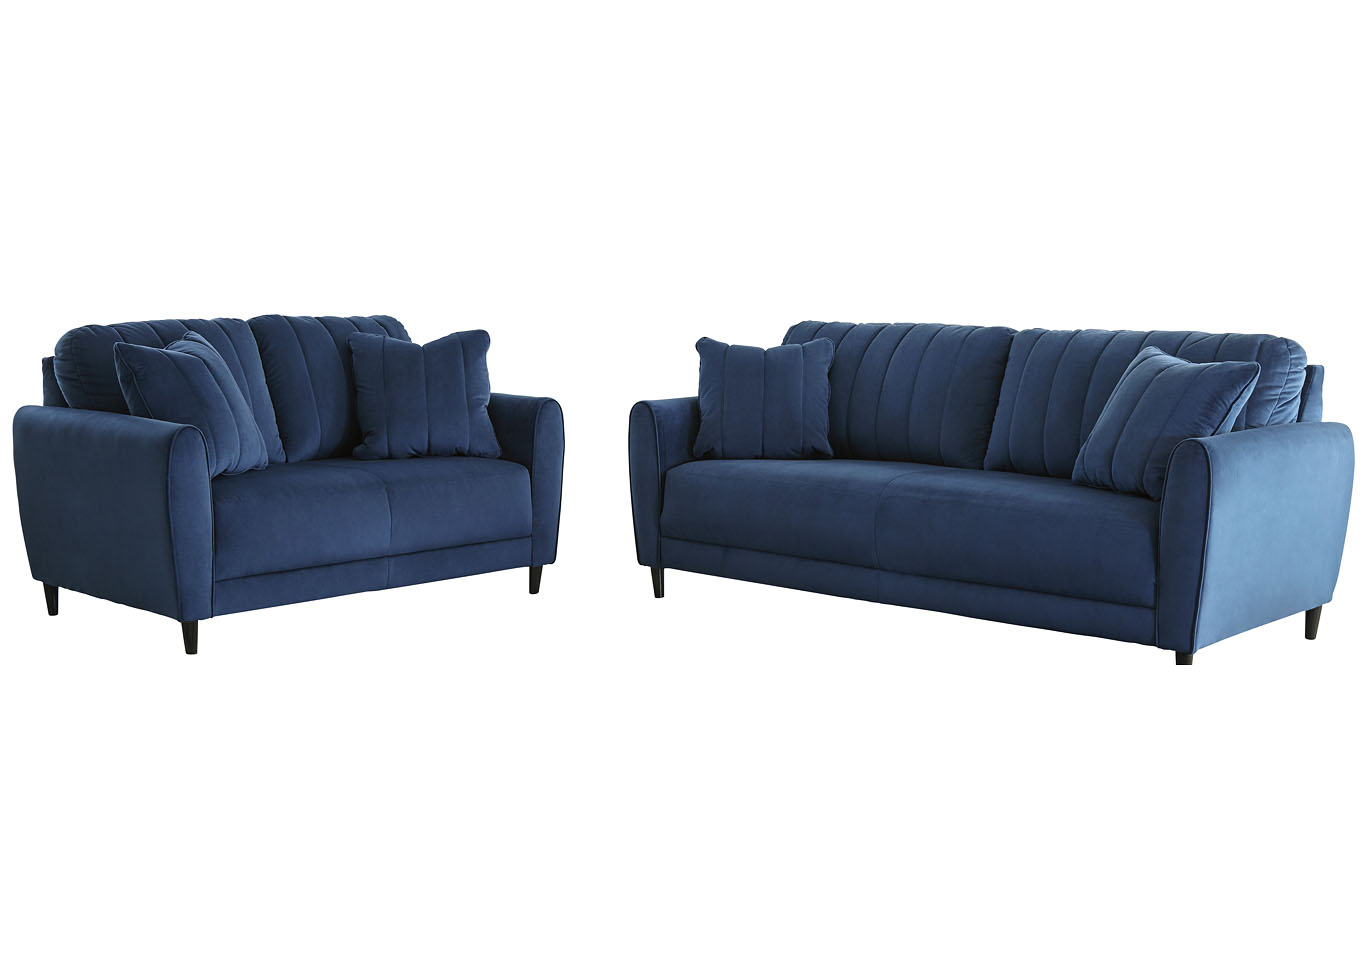 Enderlin Ink Sofa and Loveseat,Signature Design By Ashley